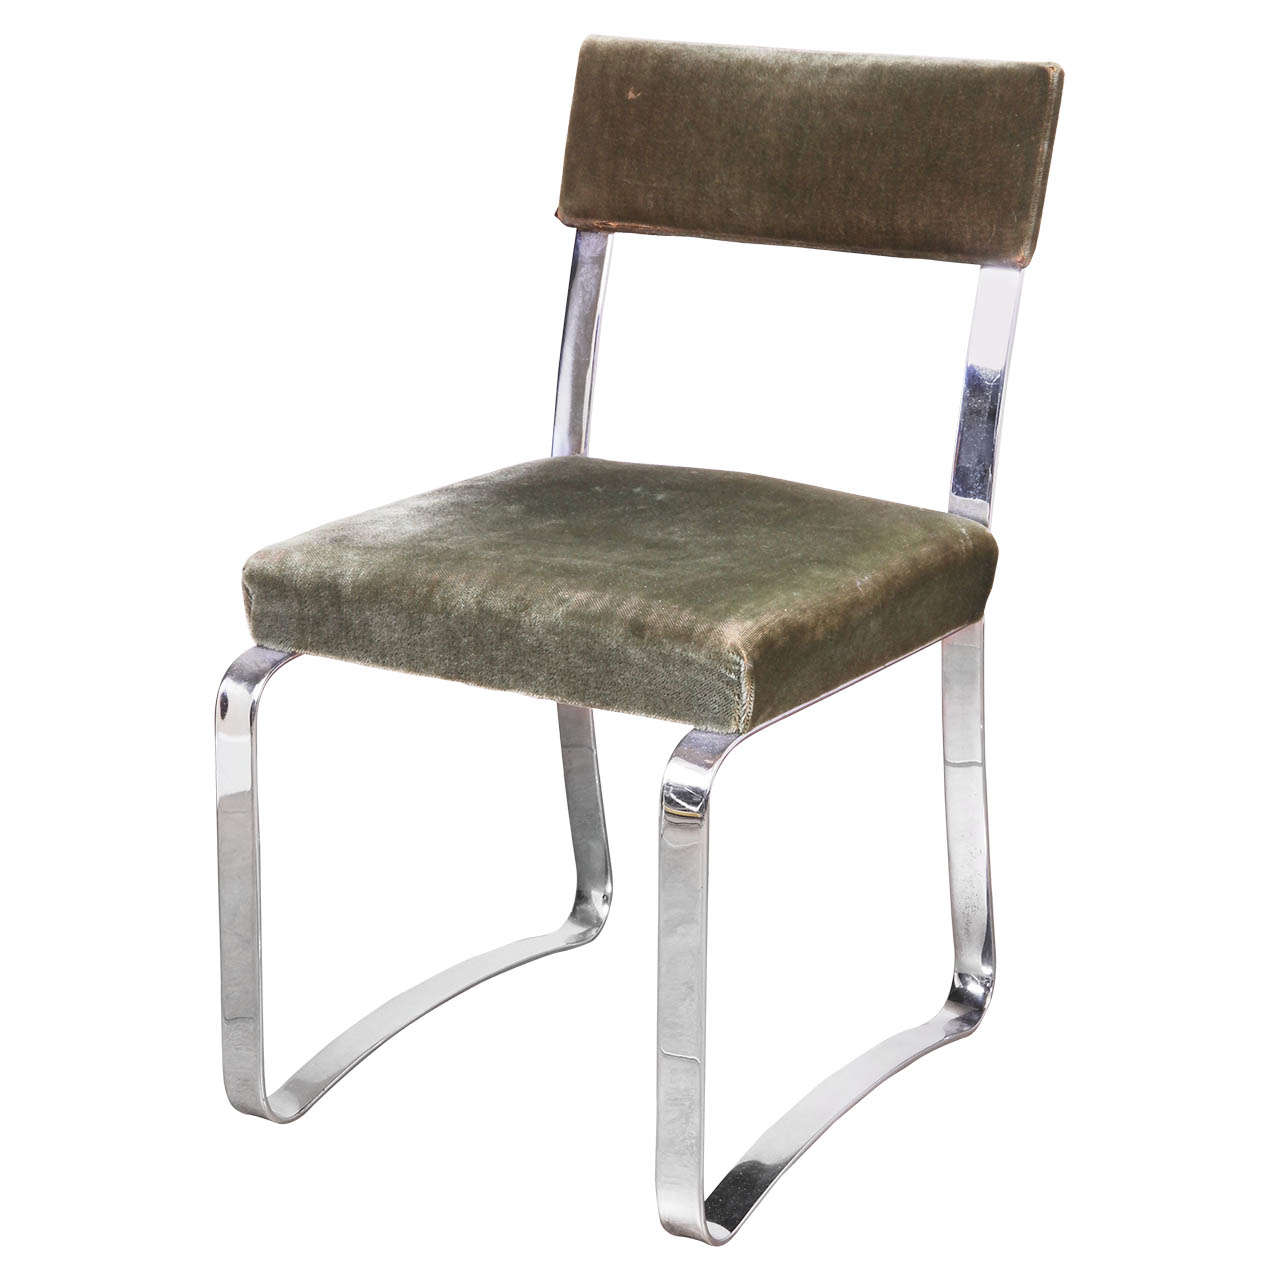 classic mckay craft art deco machine age side or desk chair 1 art deco office chair